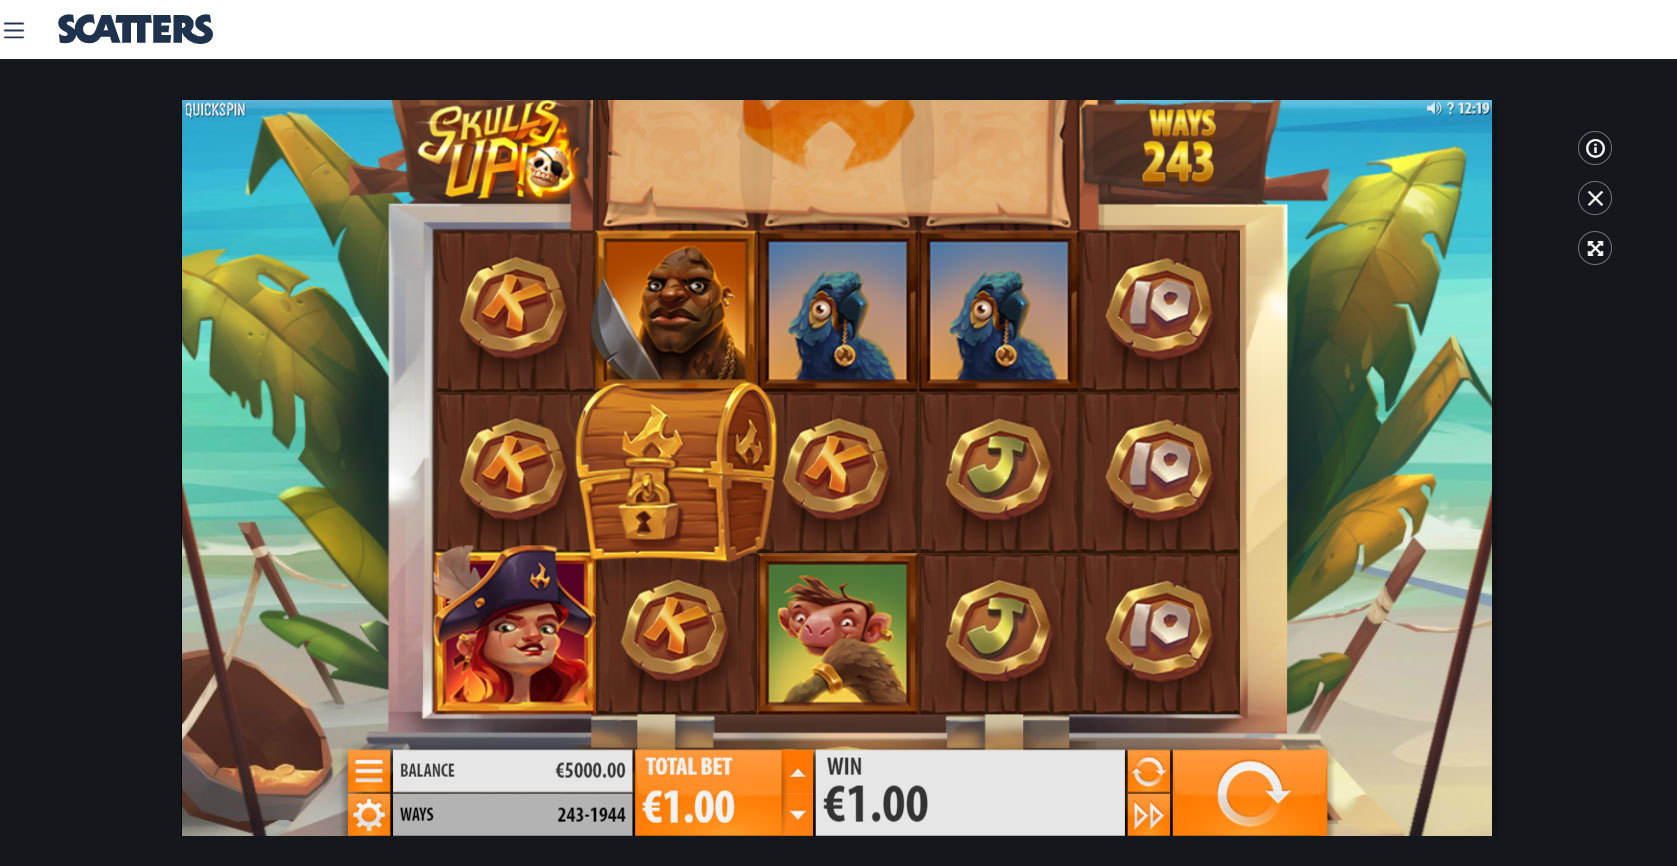 Play Skulls UP! online slot by Quickspin at Scatters Casino